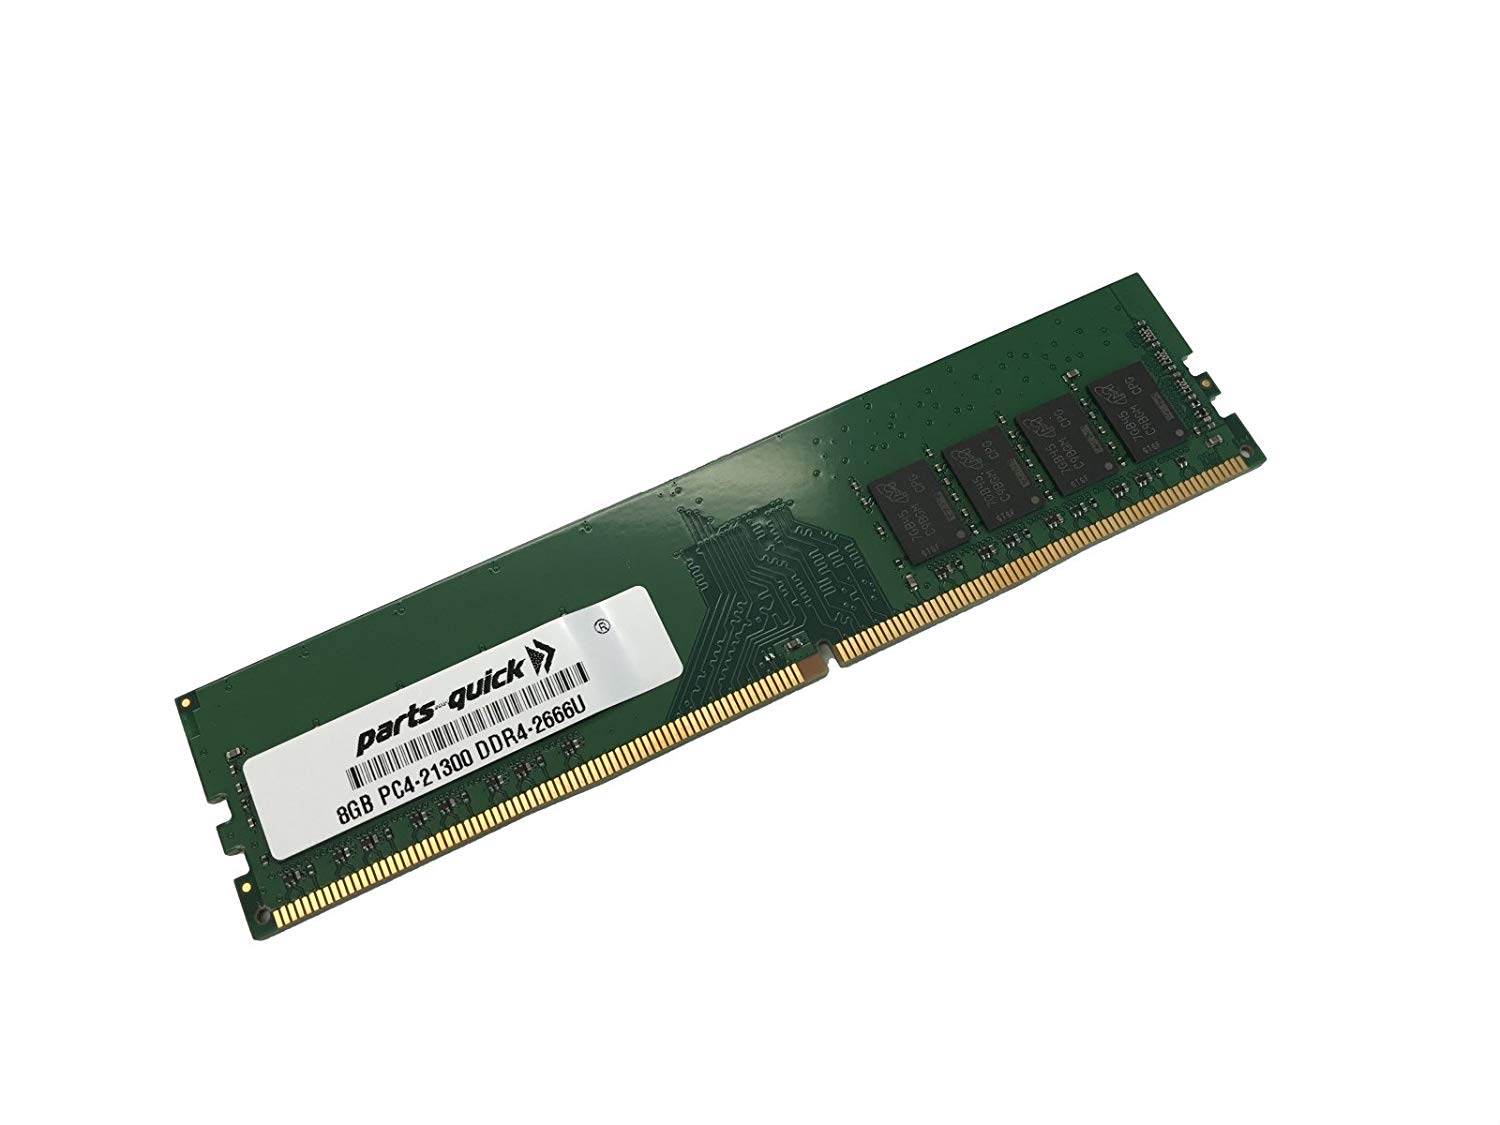 Cheap 2666 Mhz Ram, find 2666 Mhz Ram deals on line at